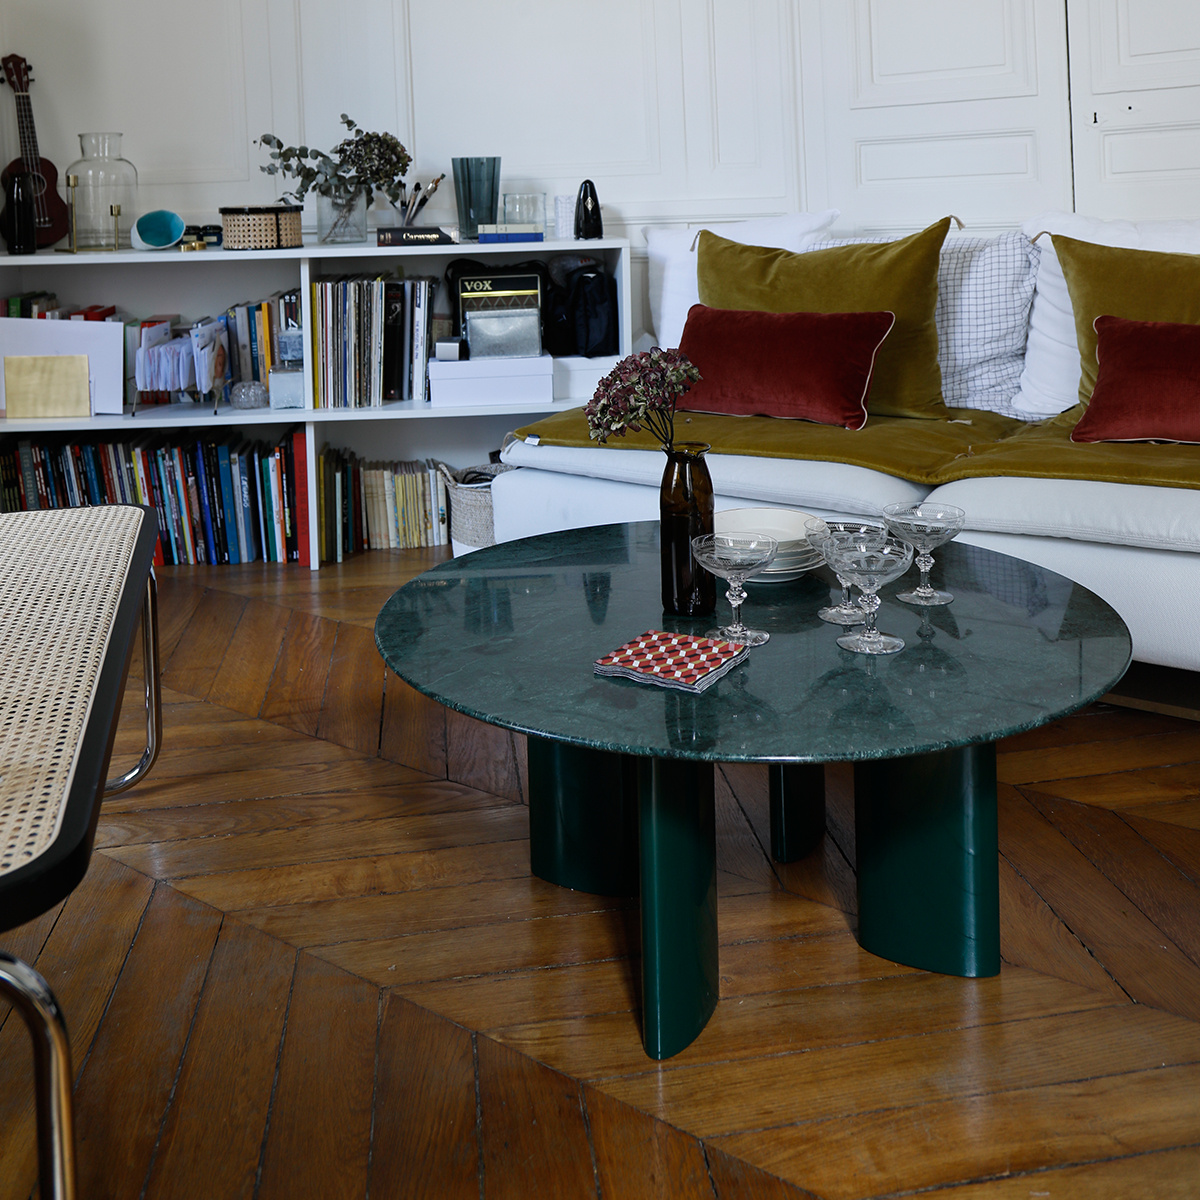 - Carlotta-coffee-table-green-marble-top-and-green-legs - Journelles